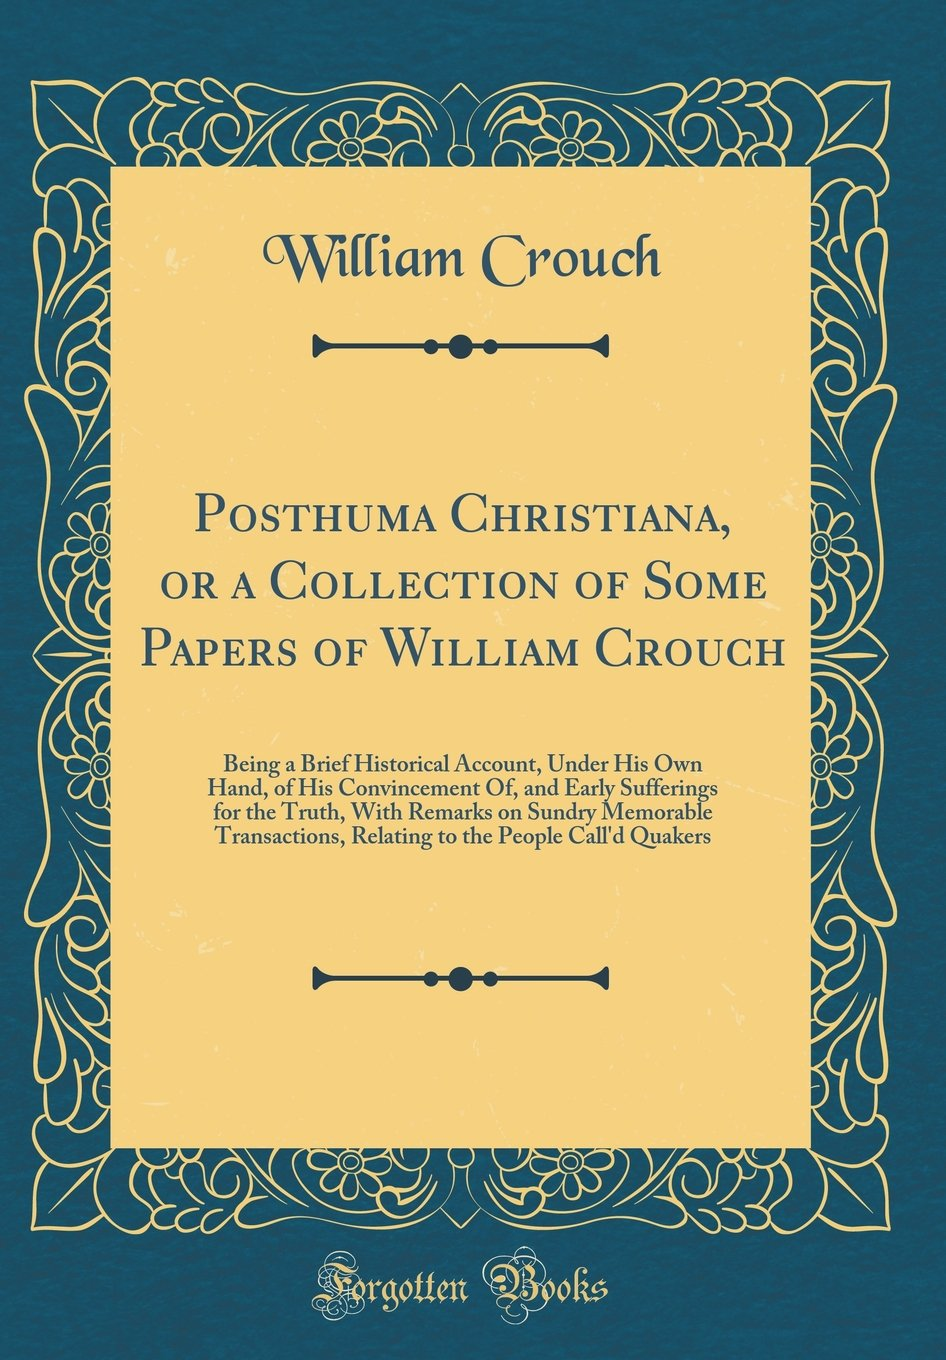 Download Posthuma Christiana, or a Collection of Some Papers of William Crouch: Being a Brief Historical Account, Under His Own Hand, of His Convincement Of, ... Transactions, Relating to the People PDF